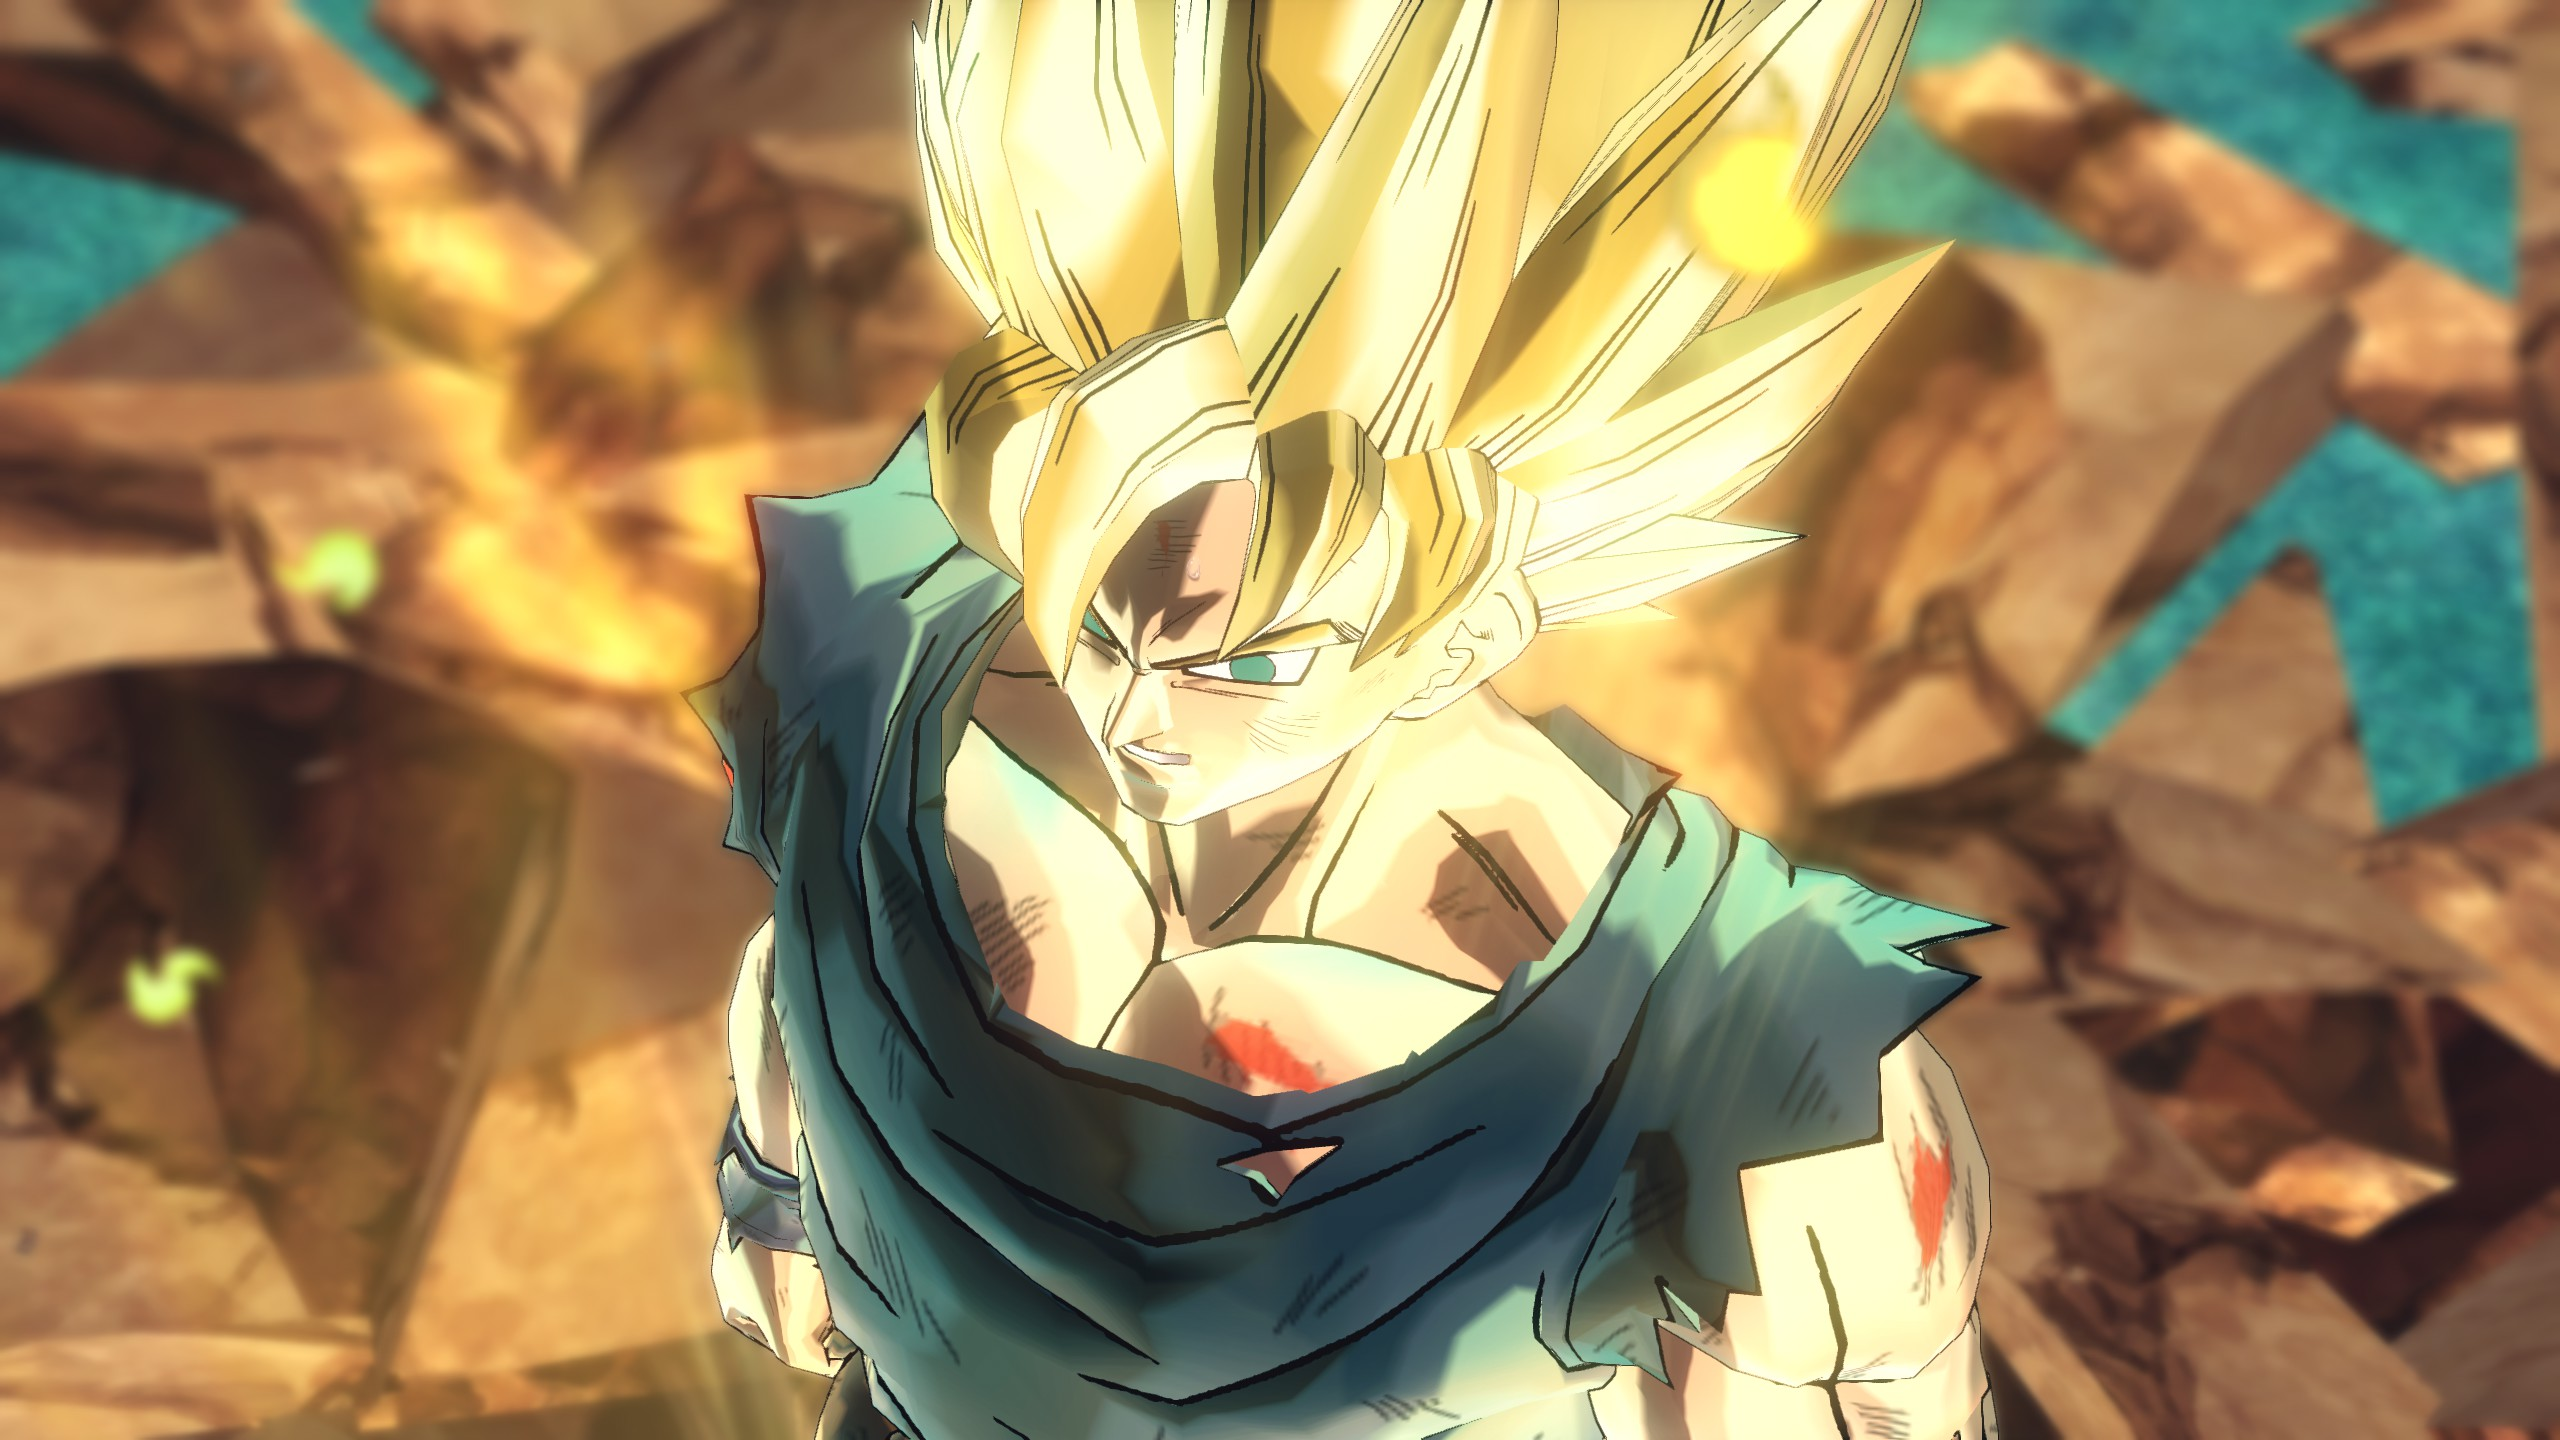 Dragon Ball Xenoverse 2 HD Wallpapers and Background Images 2560x1440